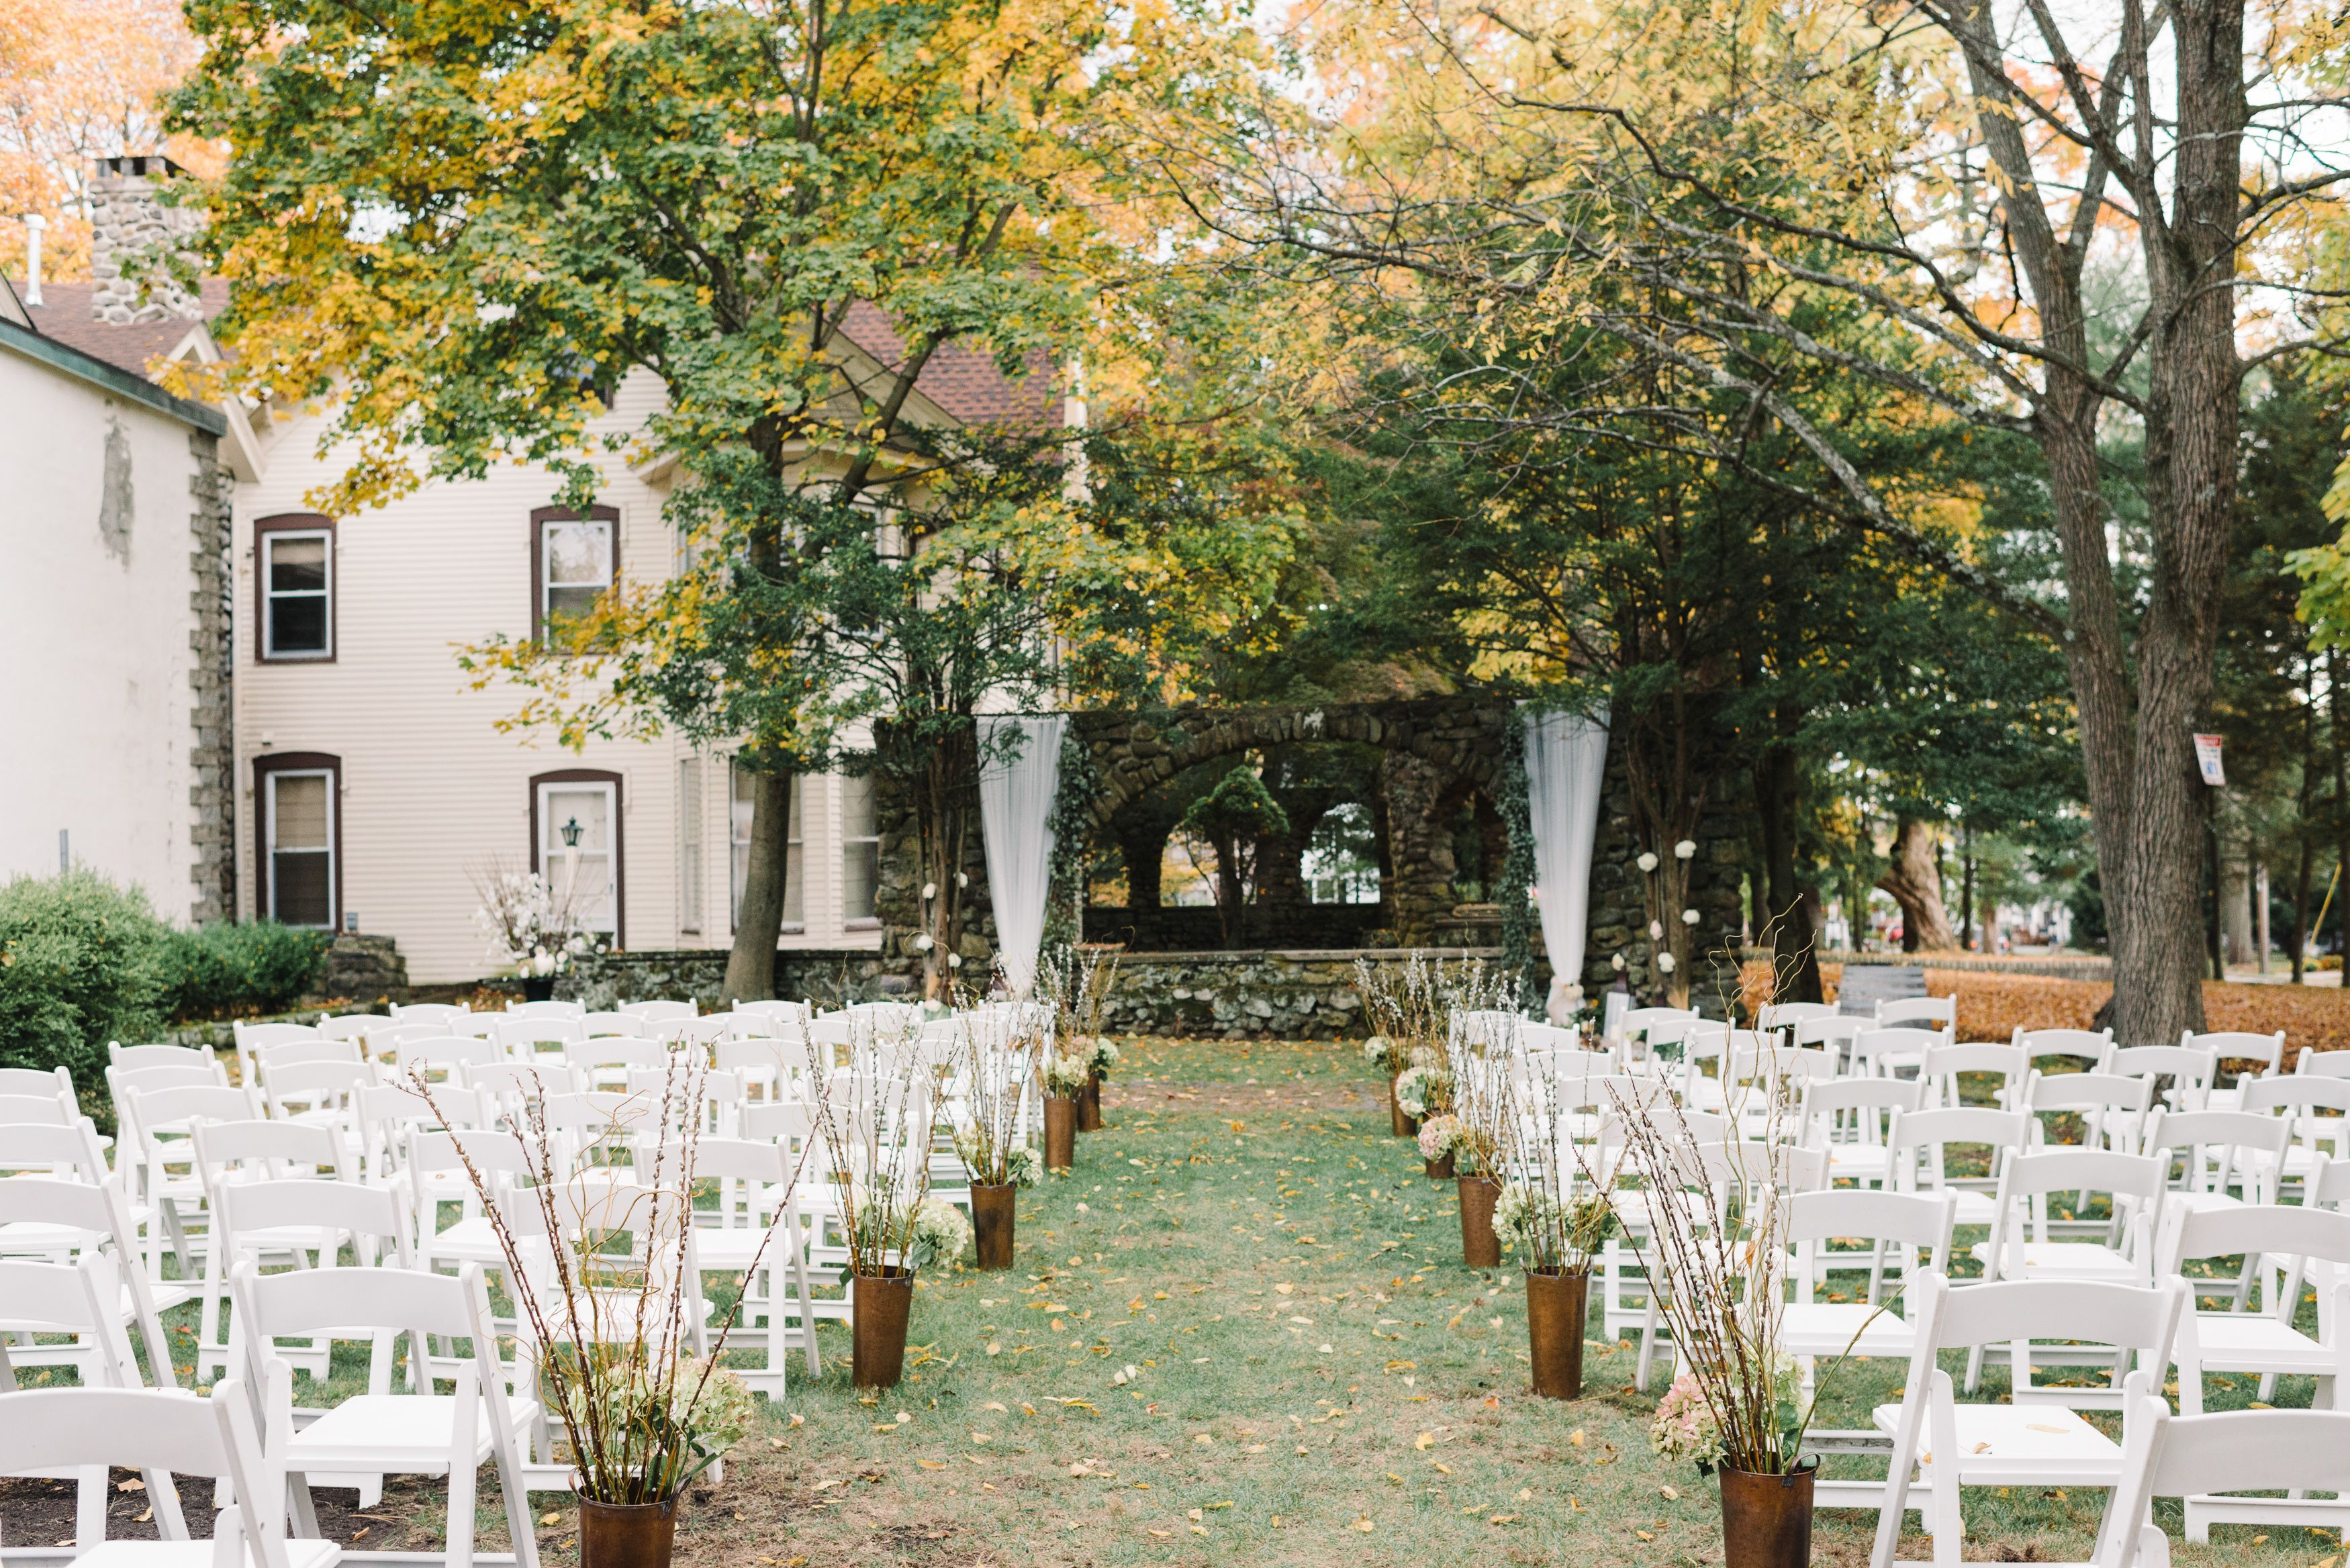 Rustic, Fall Ceremony at Brotherhood Ceremony Fall